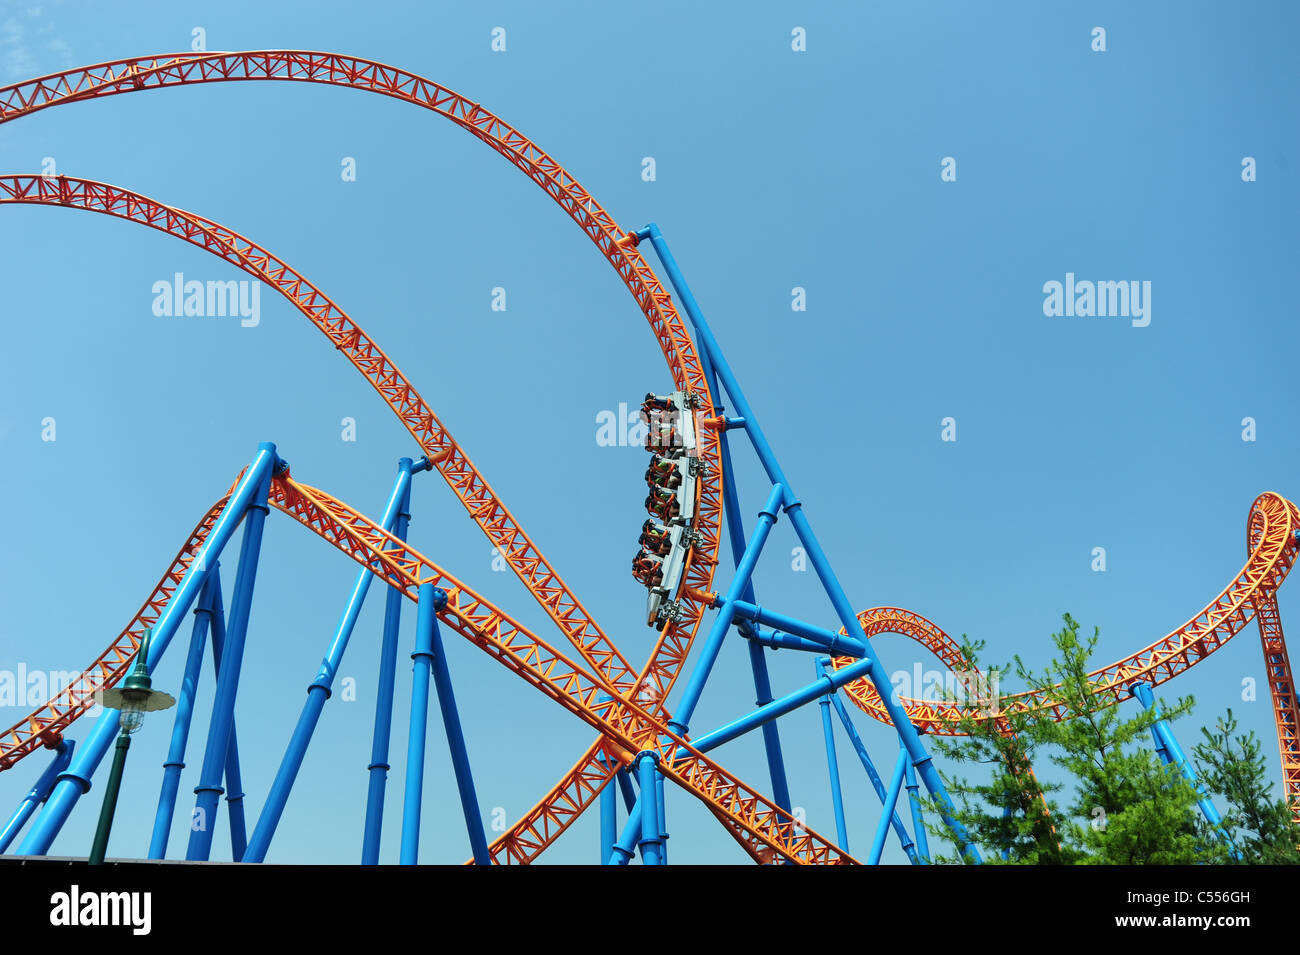 usa-hershey-pa-pennsylvania-hershey-park-roller-coaster-rollercoaster-C556GH.jpg